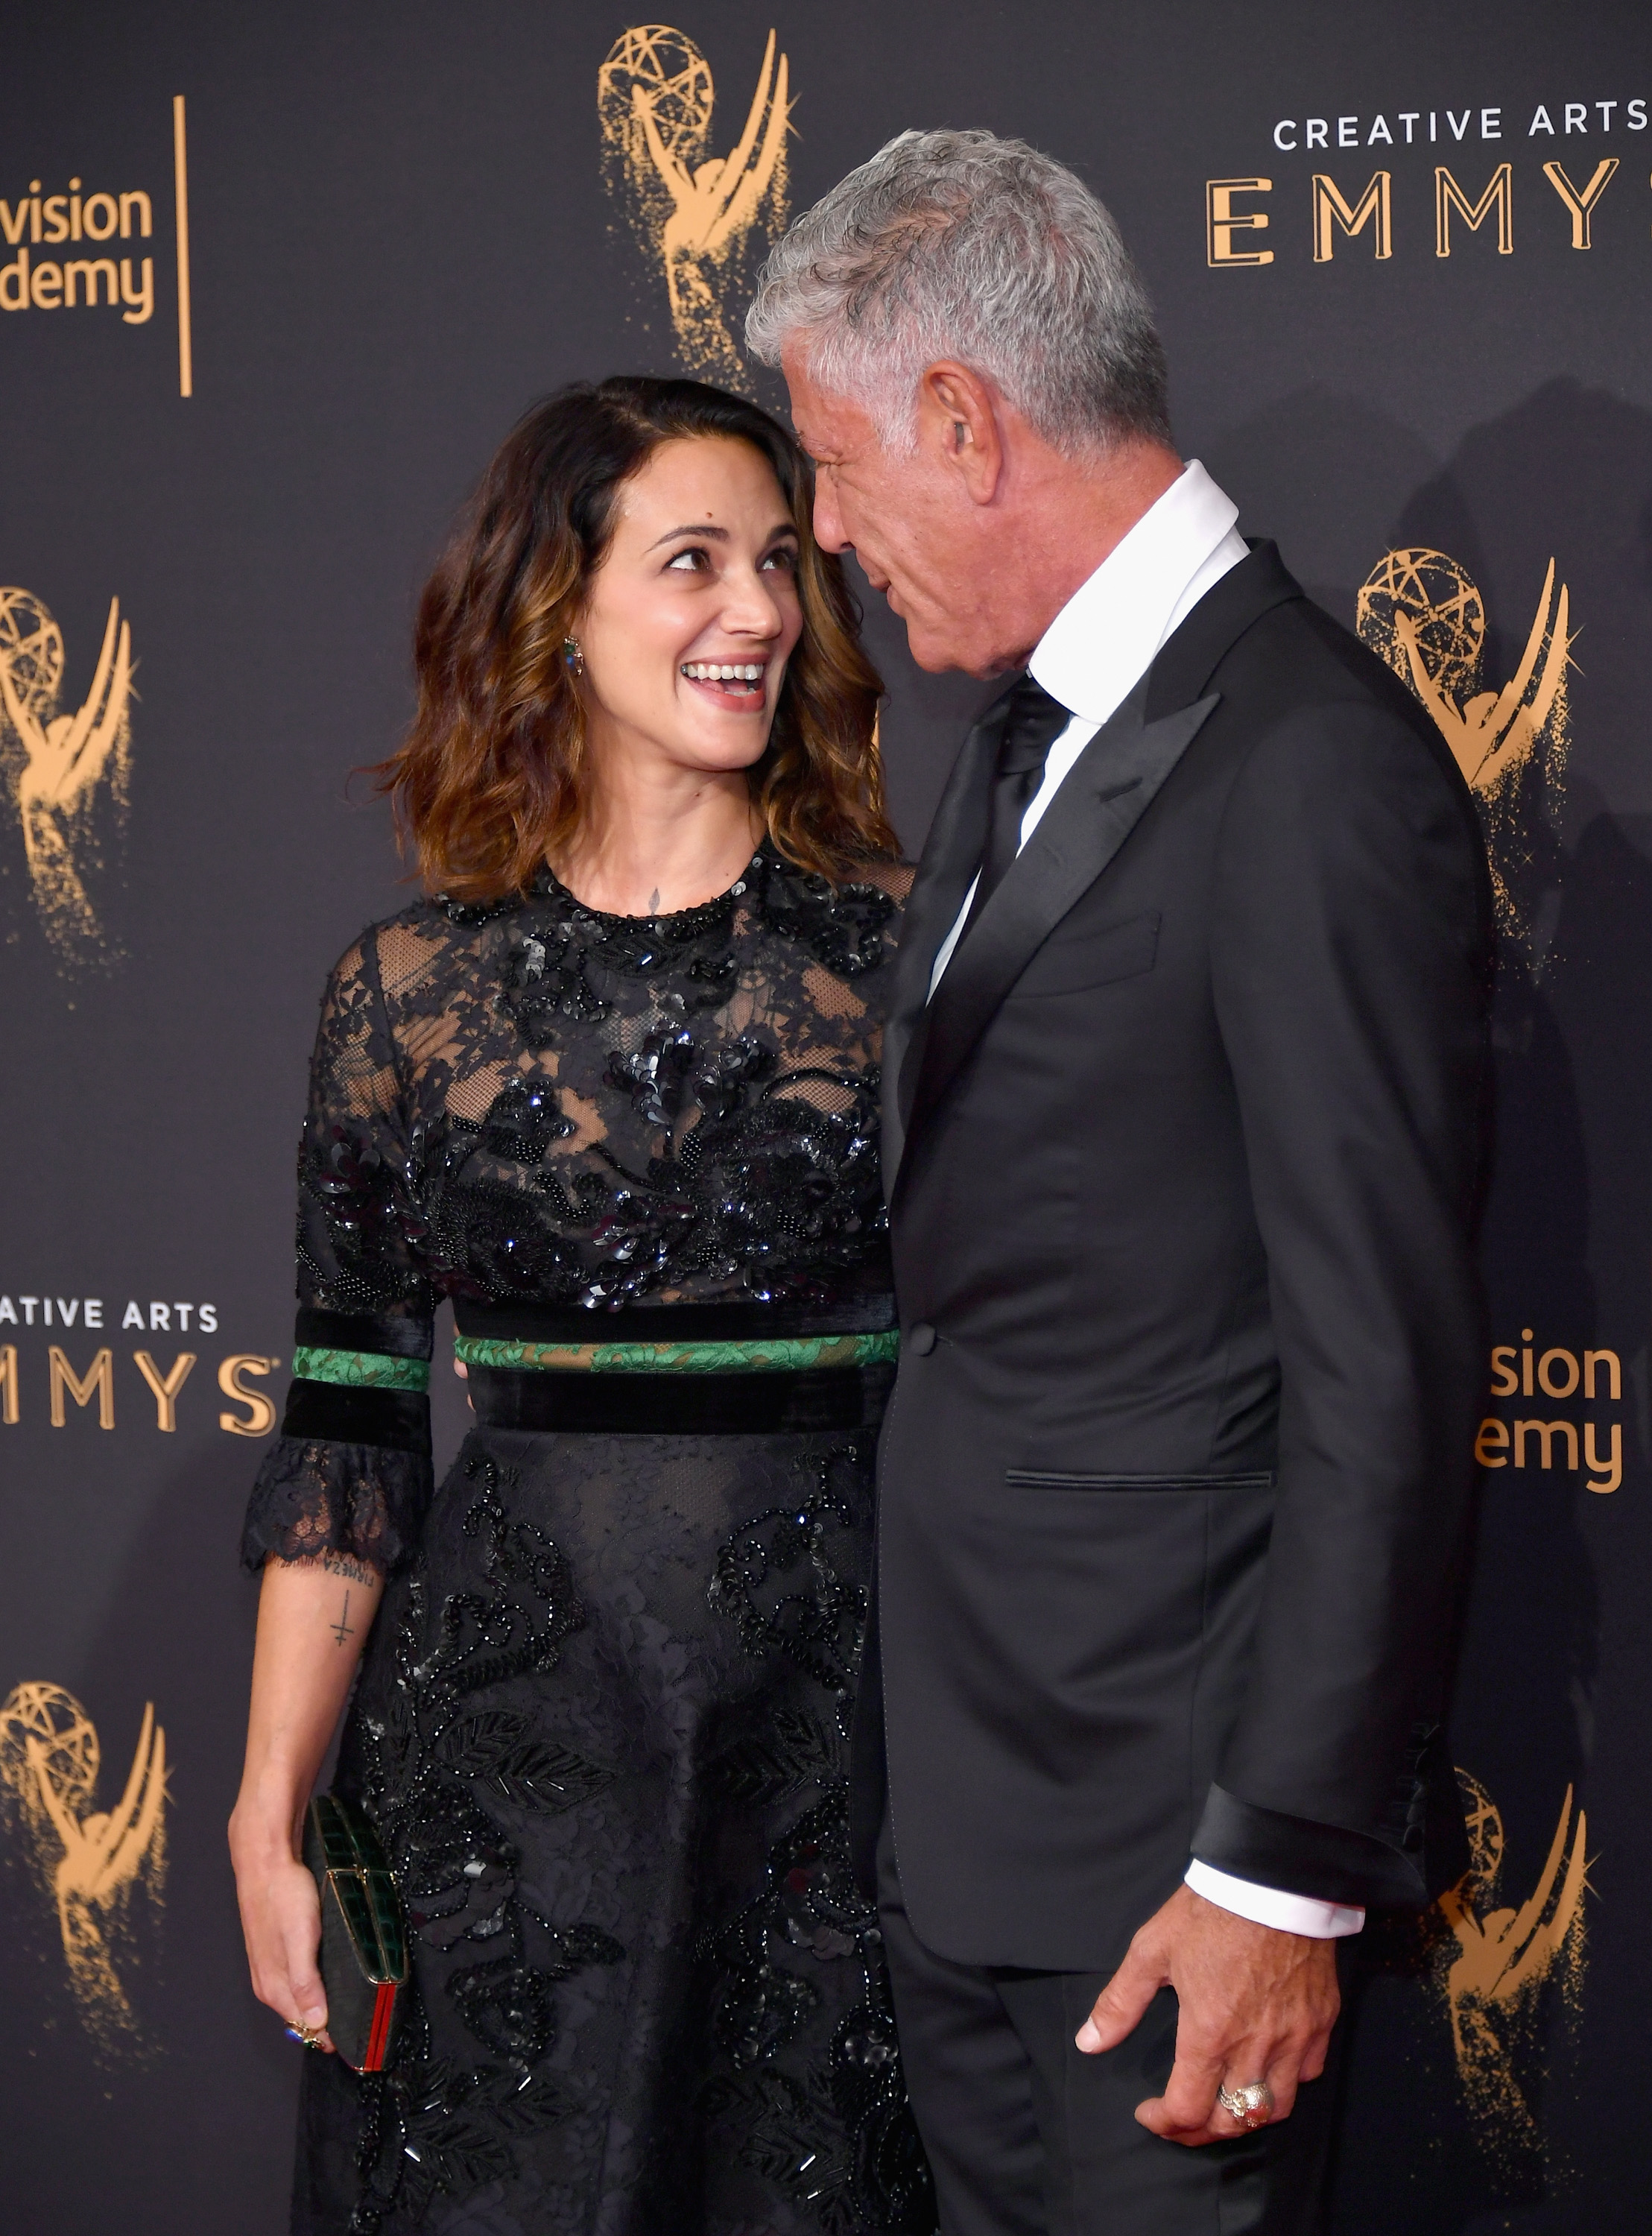 Actor Asia Argento and Anthony Bourdain attend day 1 of the 2017 Creative Arts Emmy Awards at Microsoft Theater on September 9, 2017 in Los Angeles, California.